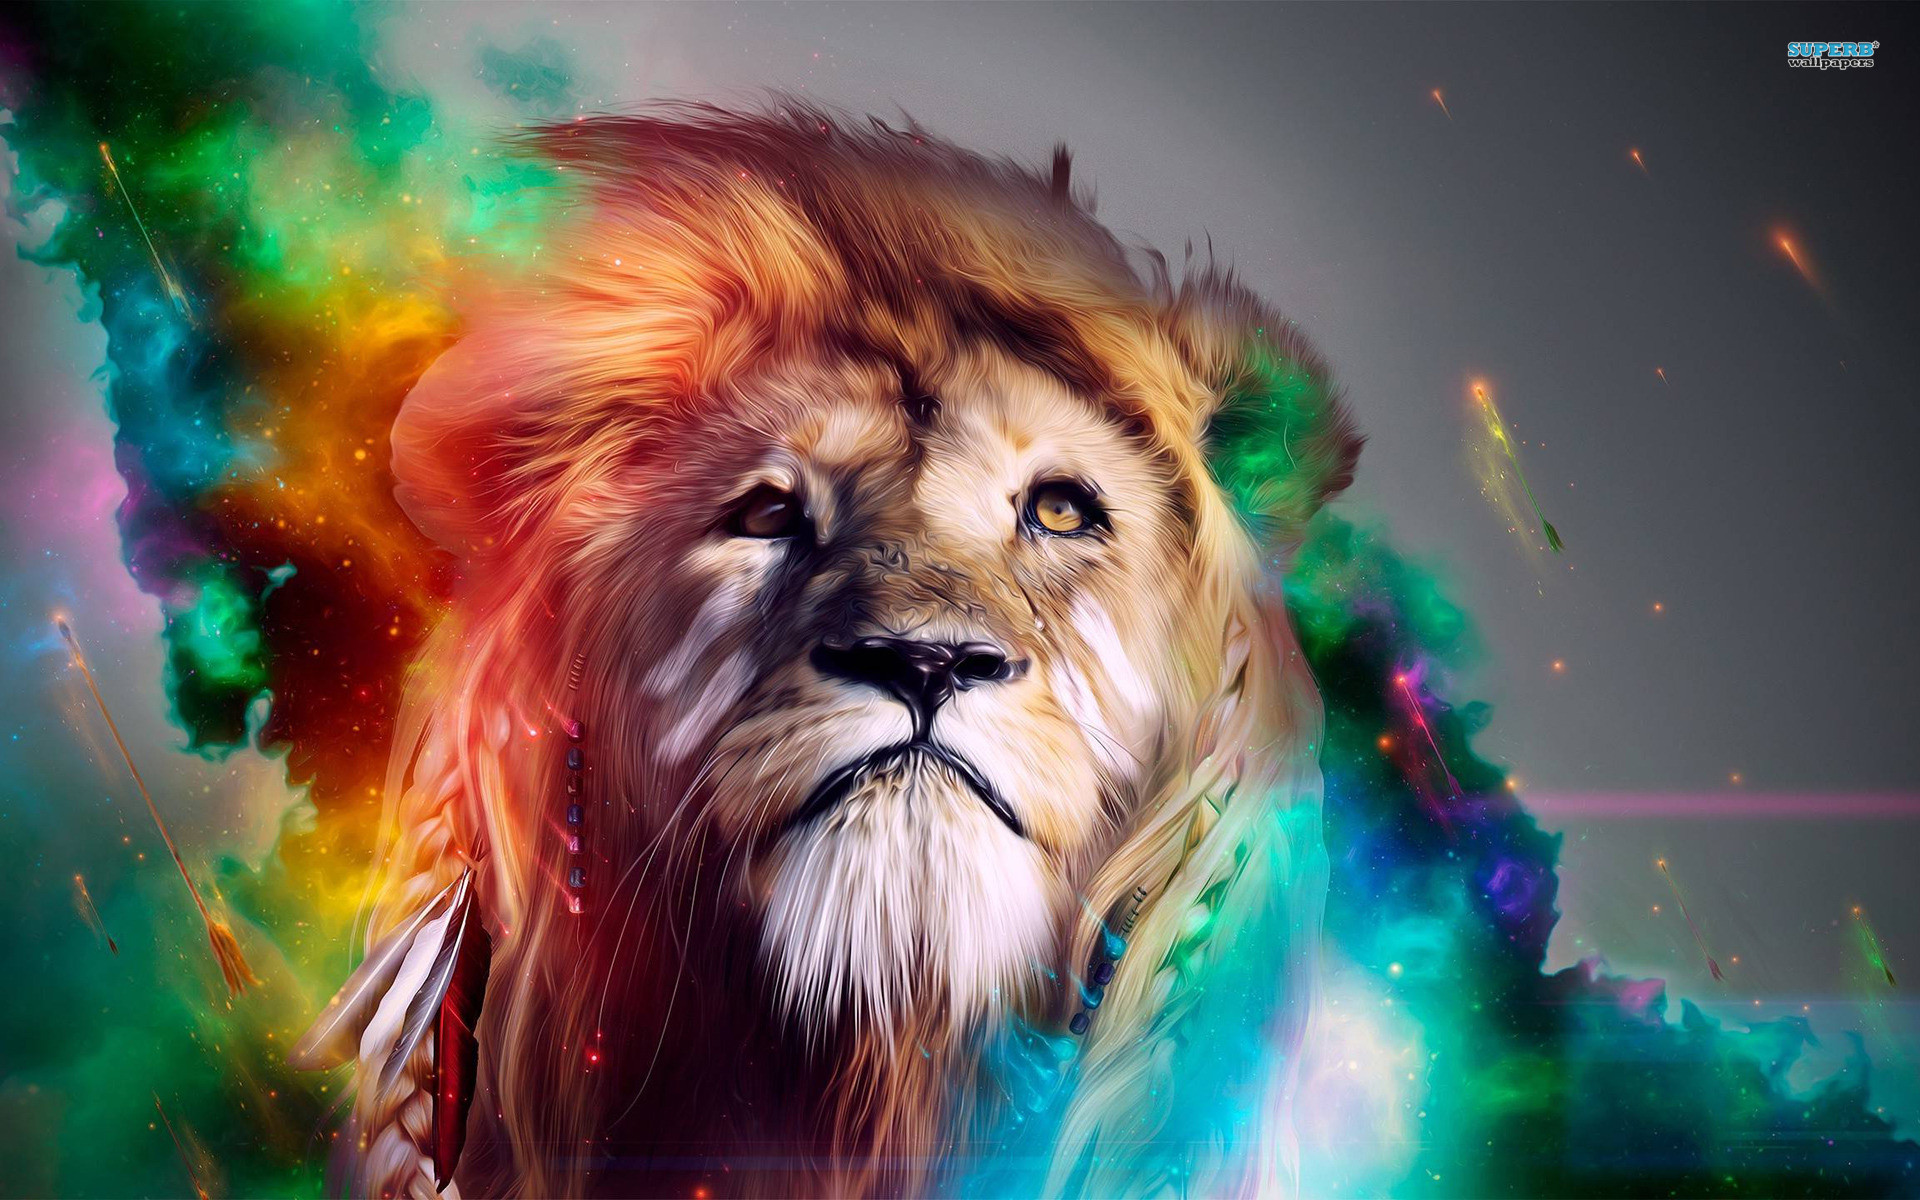 1920x1200 Lion Wallpaper Mobile ...